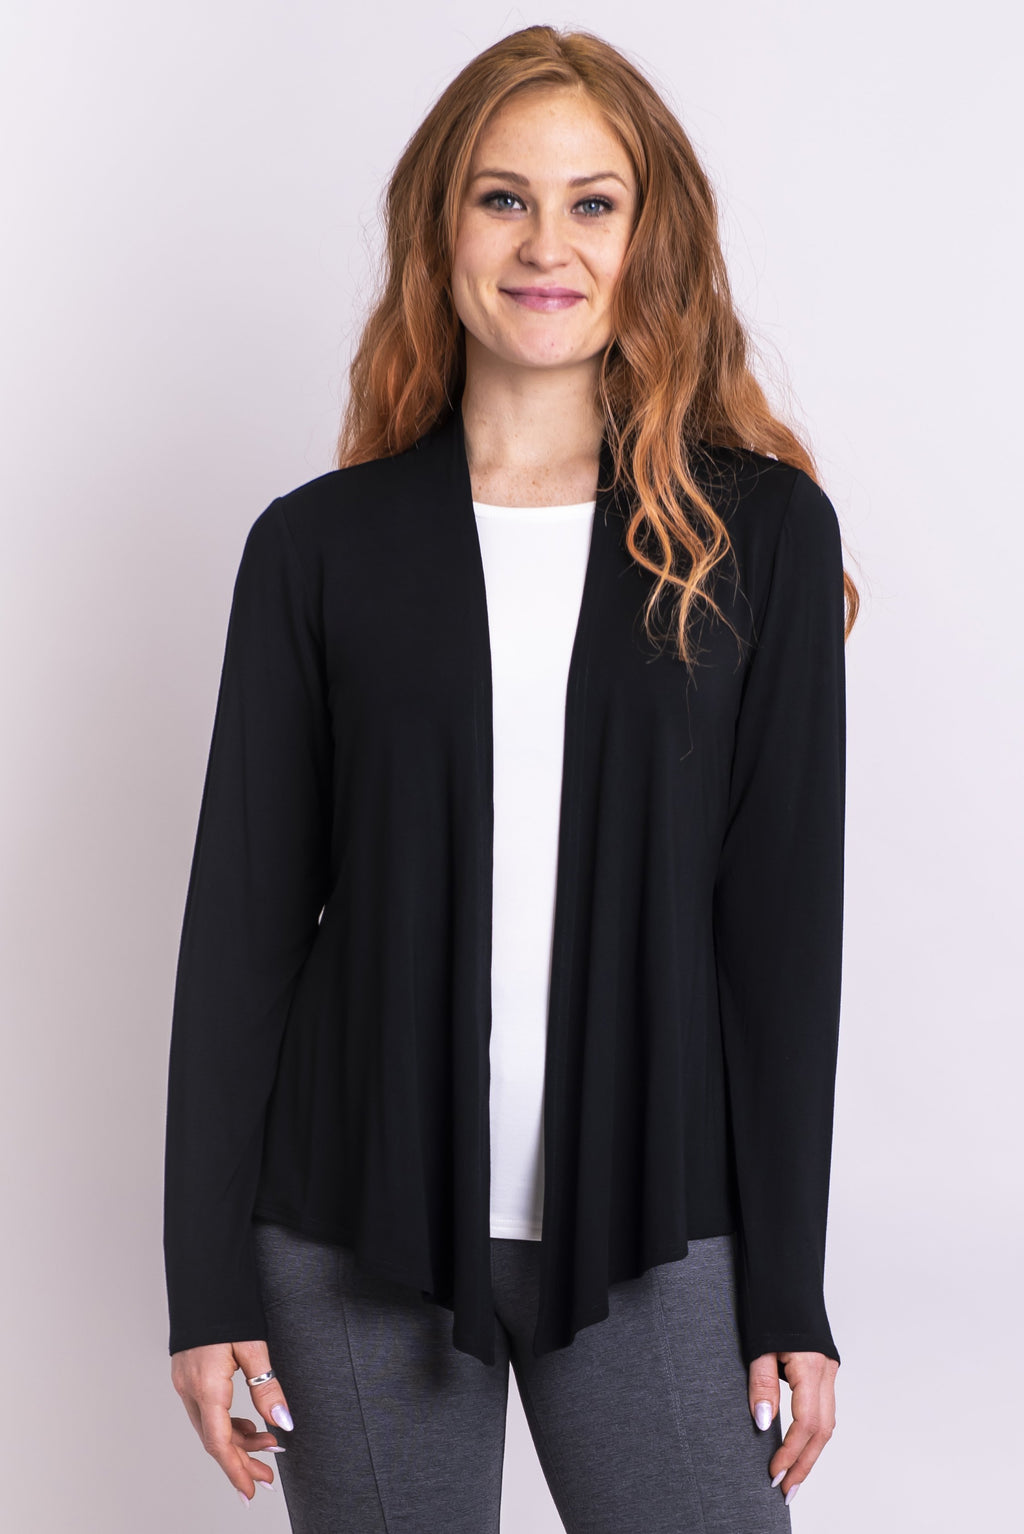 Snooky Jacket, Black - Blue Sky Clothing Co